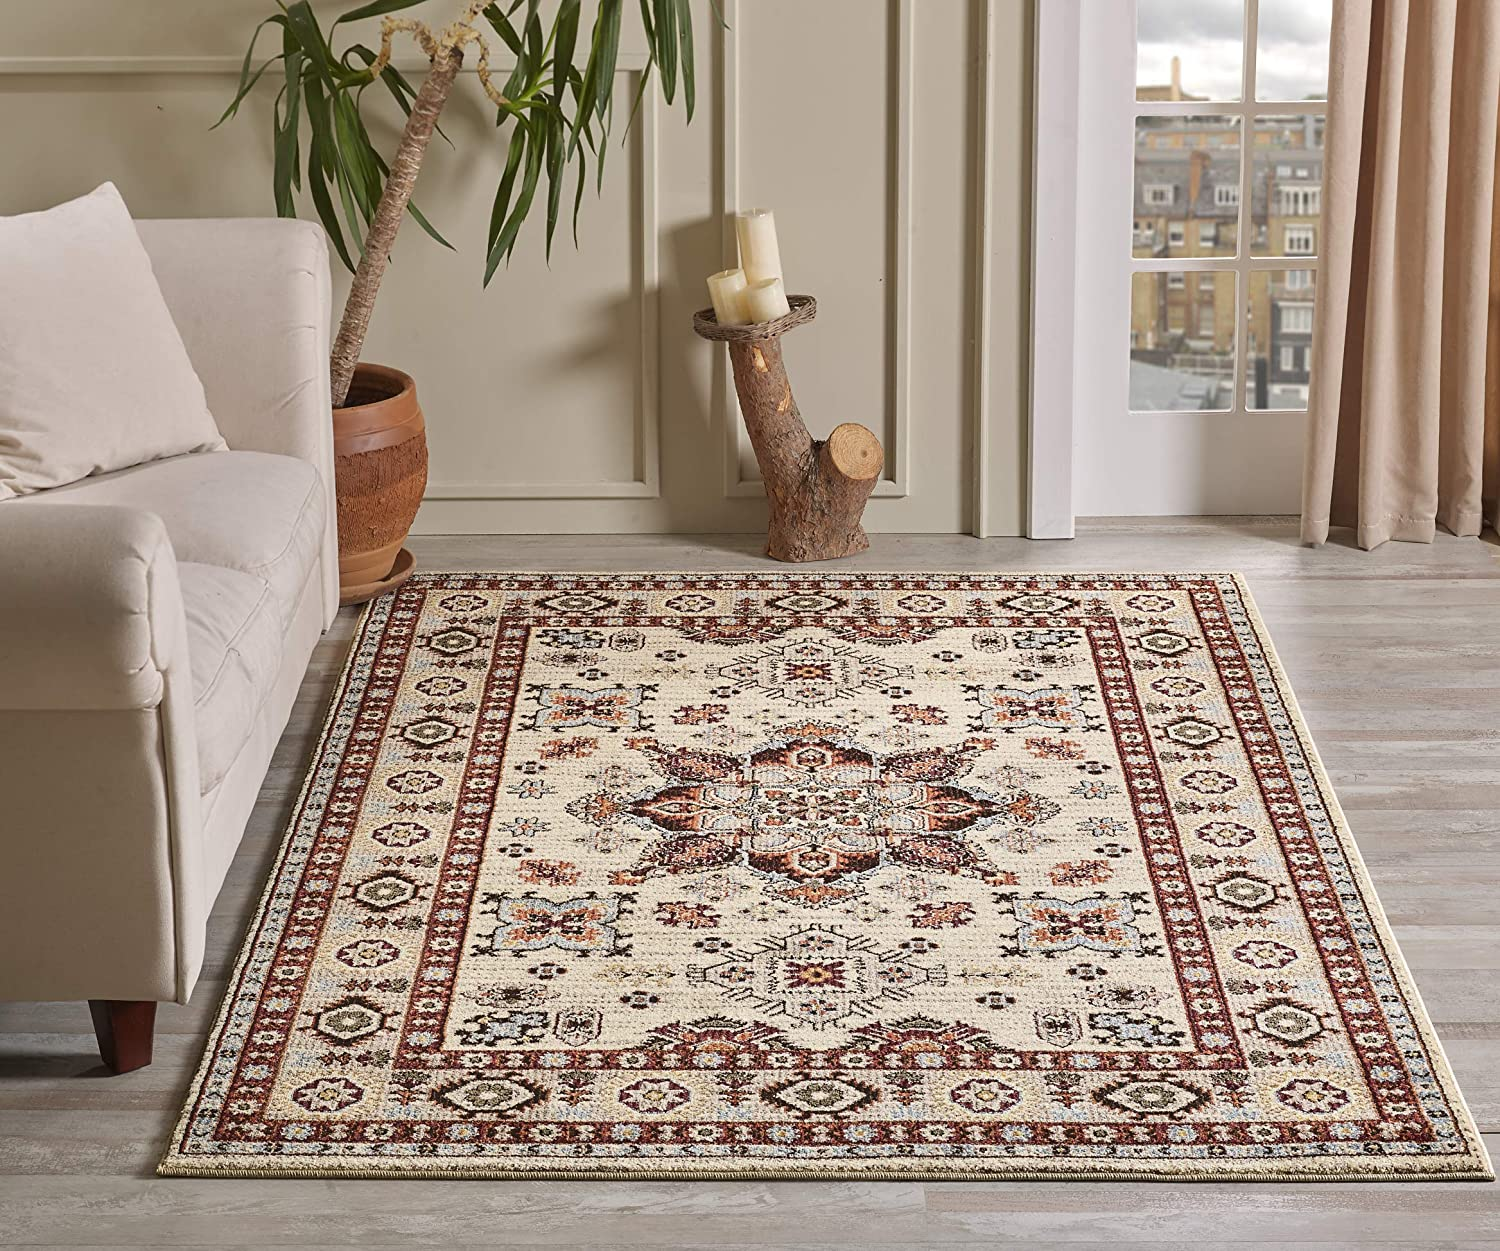 Amazon.com: GLORY RUGS Traditional Area Rug 5x7 Oriental Medallion Cream  Hand Touch Vintage Traditional Texture for Bedroom Living Dining Room 7315A  Gabbeh Collection (Cream): Kitchen & Dining